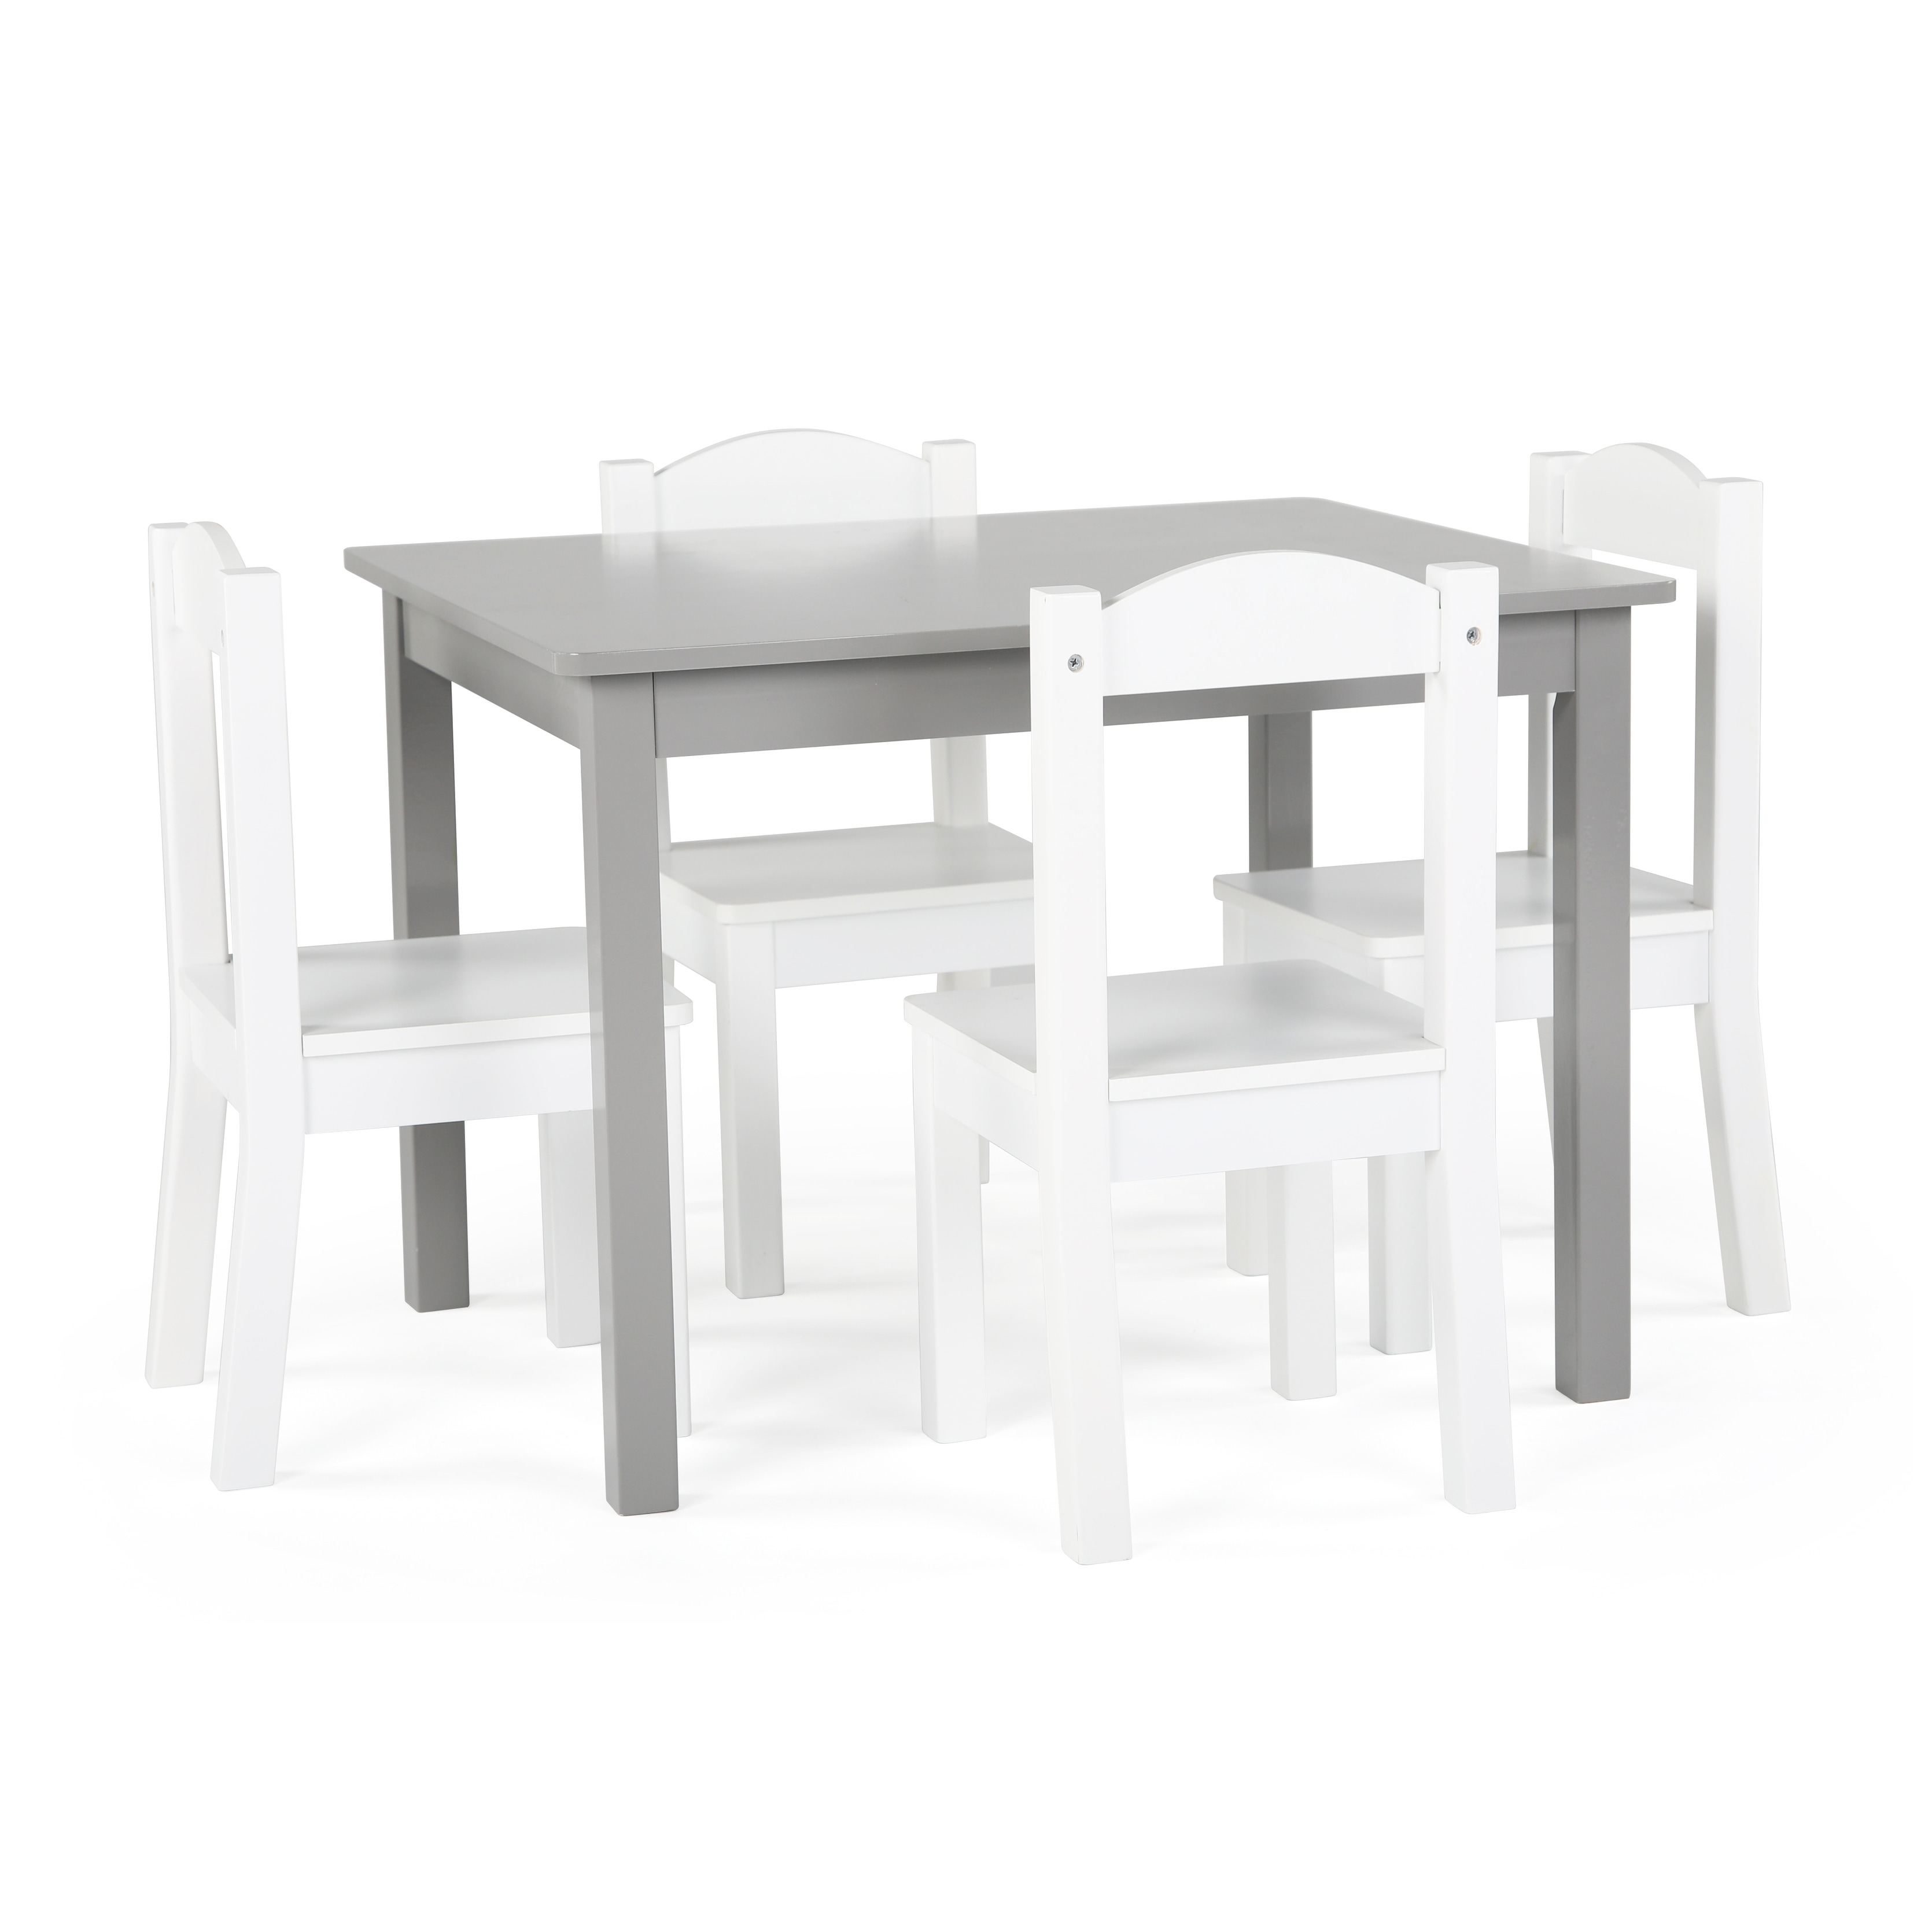 Childrens Table And Chair Set Inspire 5 Piece Wood Kids Table Chairs Set In Grey White